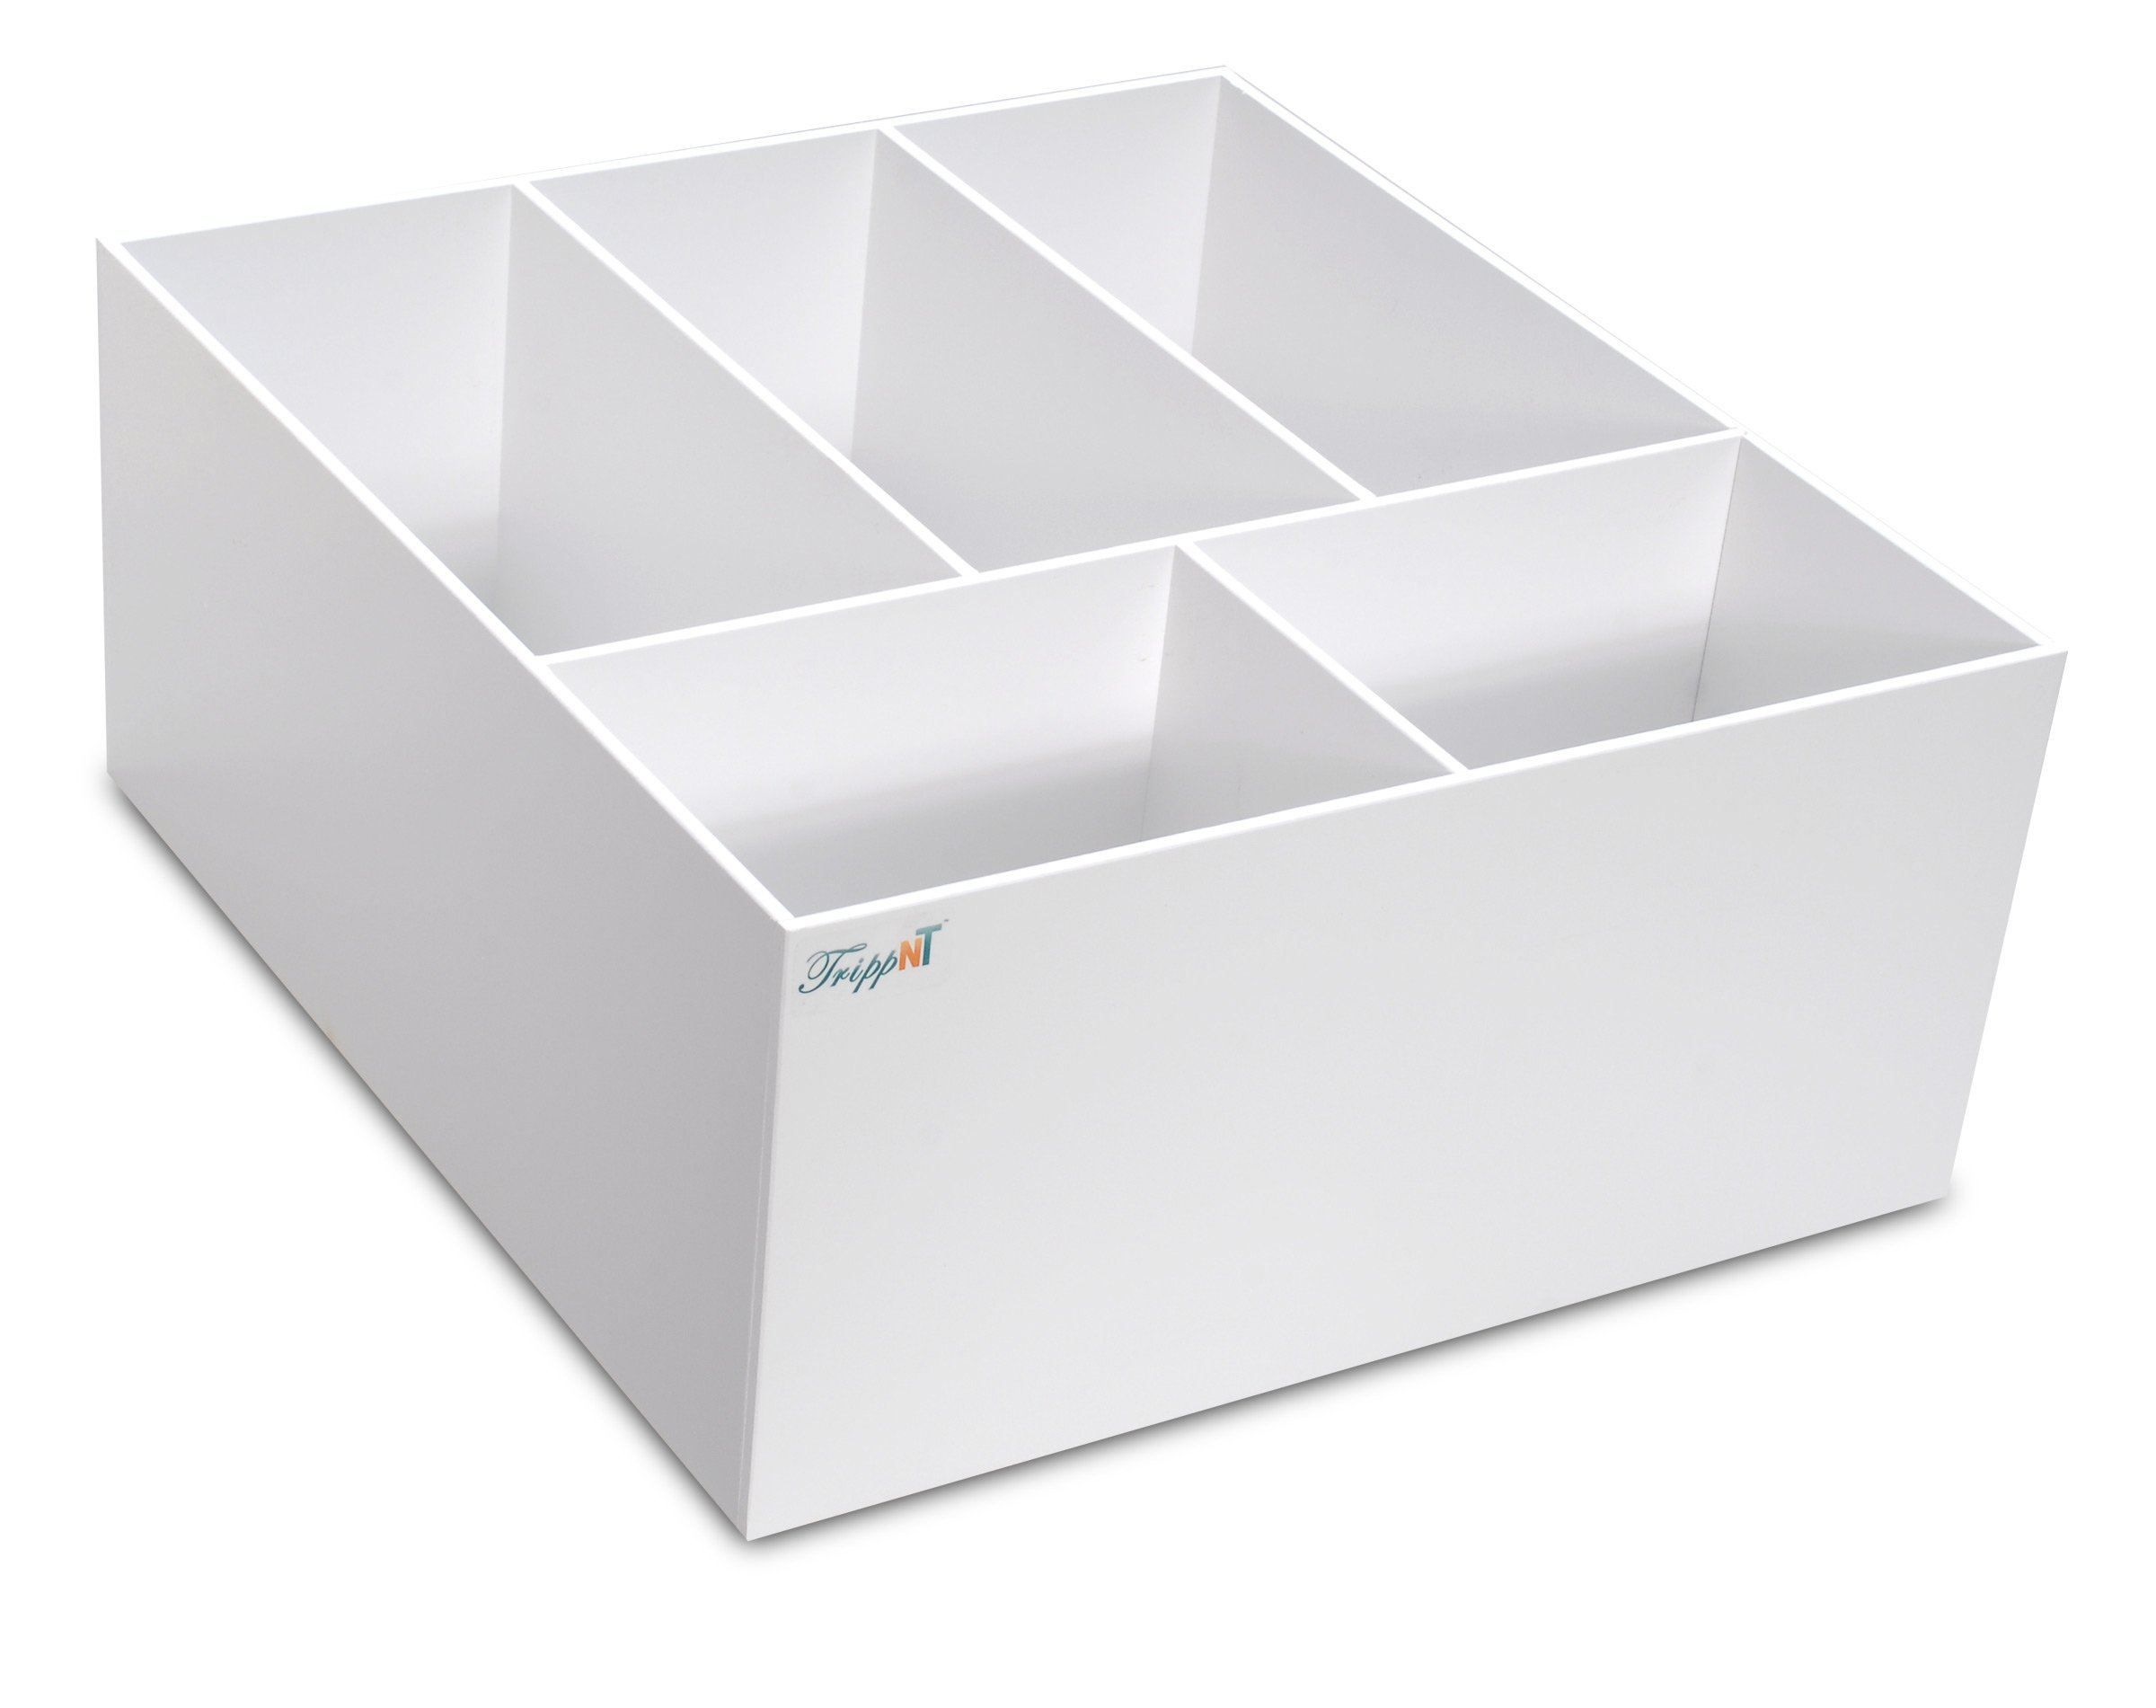 TrippNT 50549 White PVC Plastic 8'' Extra Deep Drawer Organizer, 5 Compartments, 17.5'' Width x 8'' Height x 19.5'' Depth by TrippNT